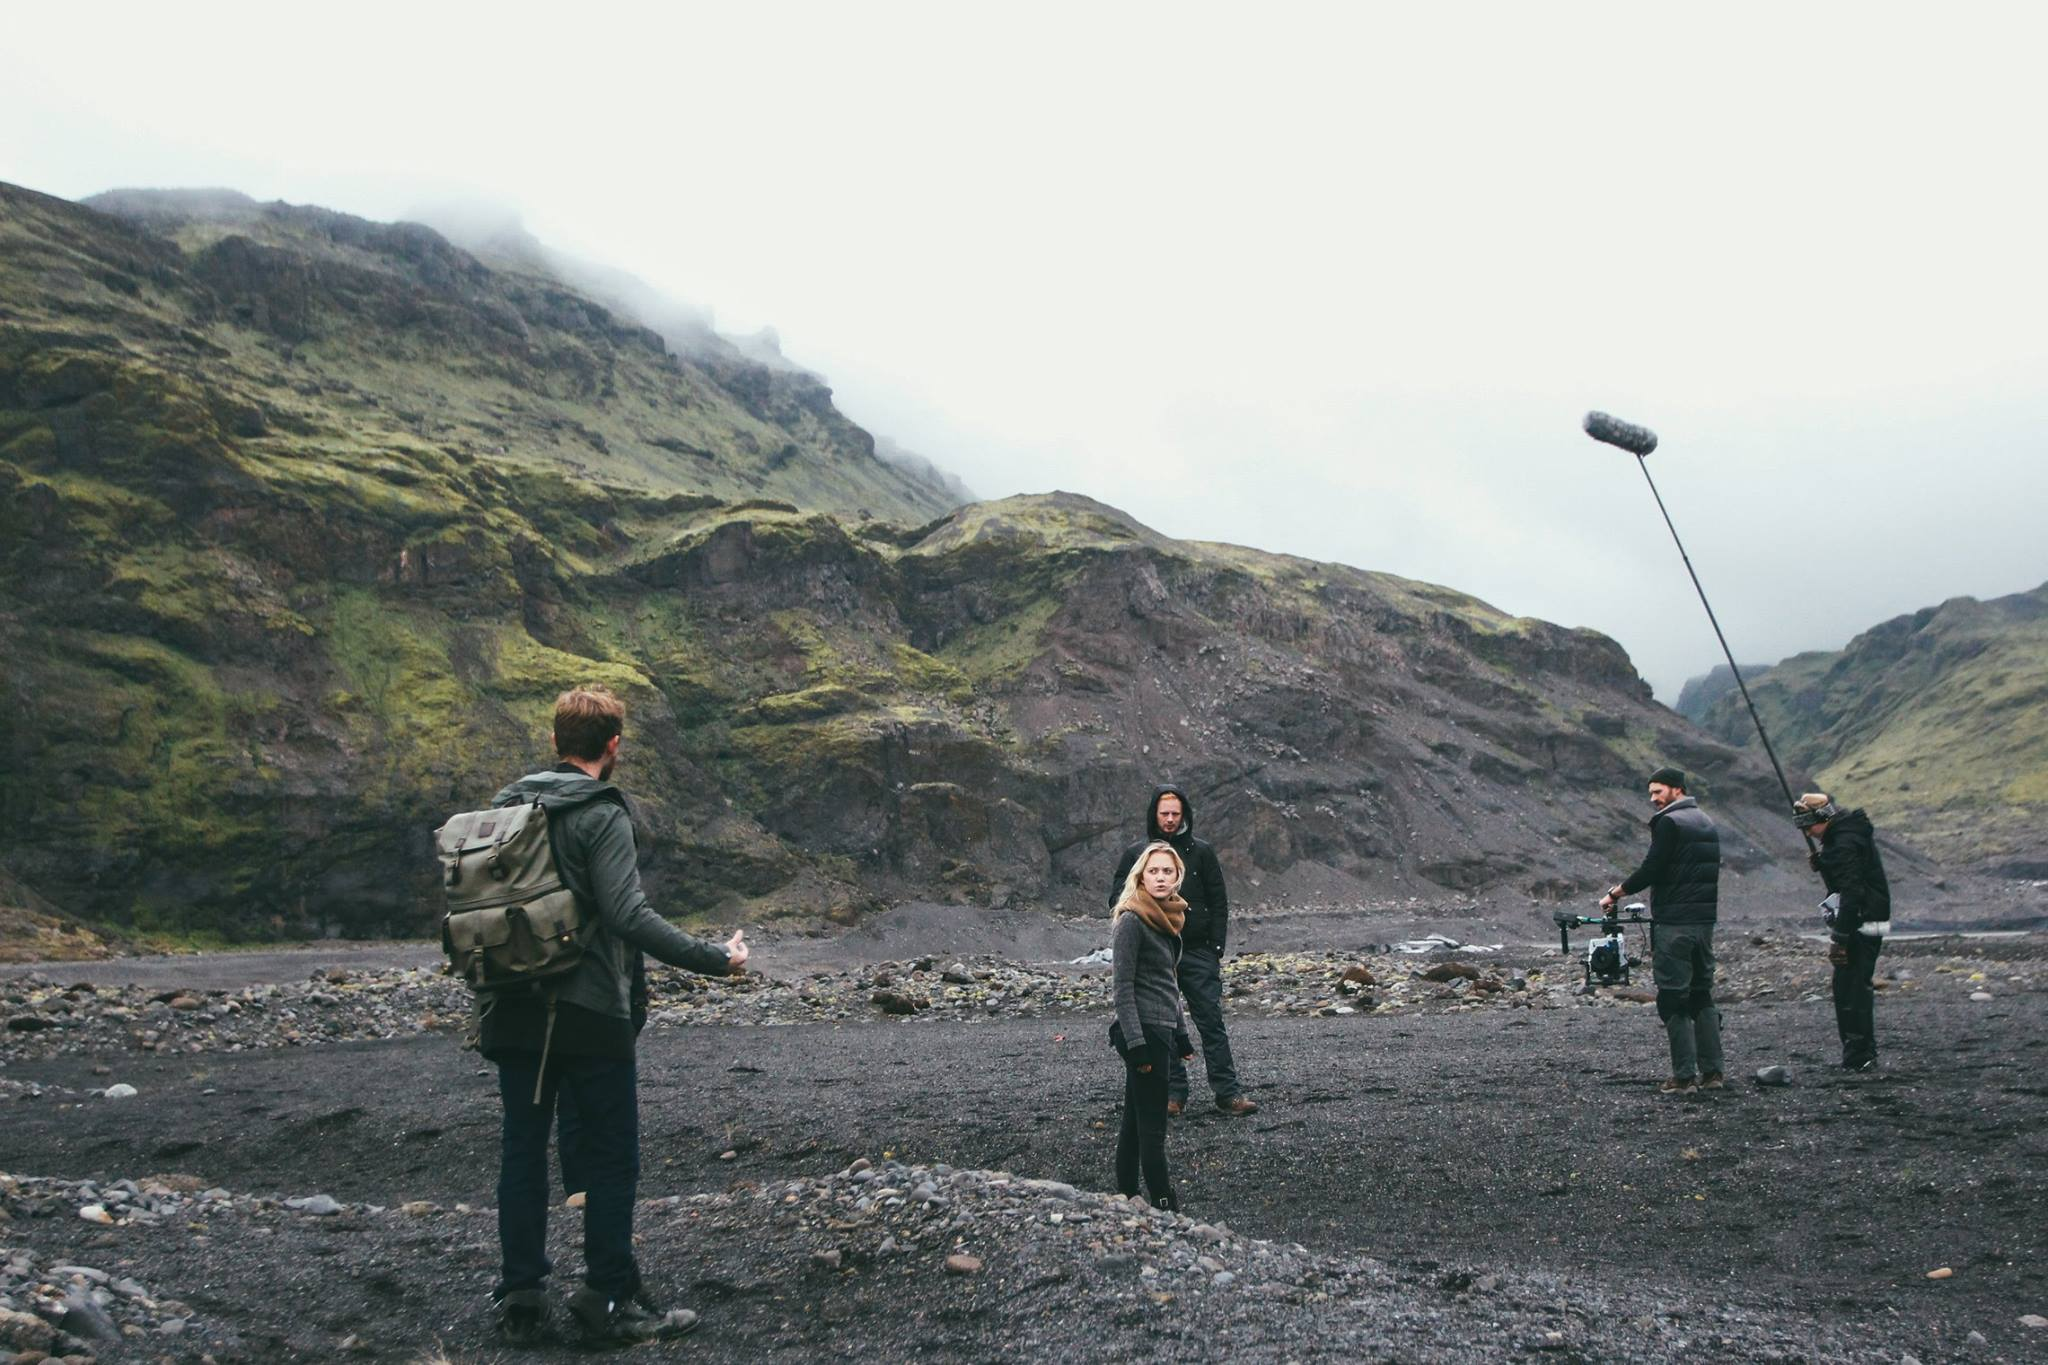 filming on set at eyjafjallajökull glacier